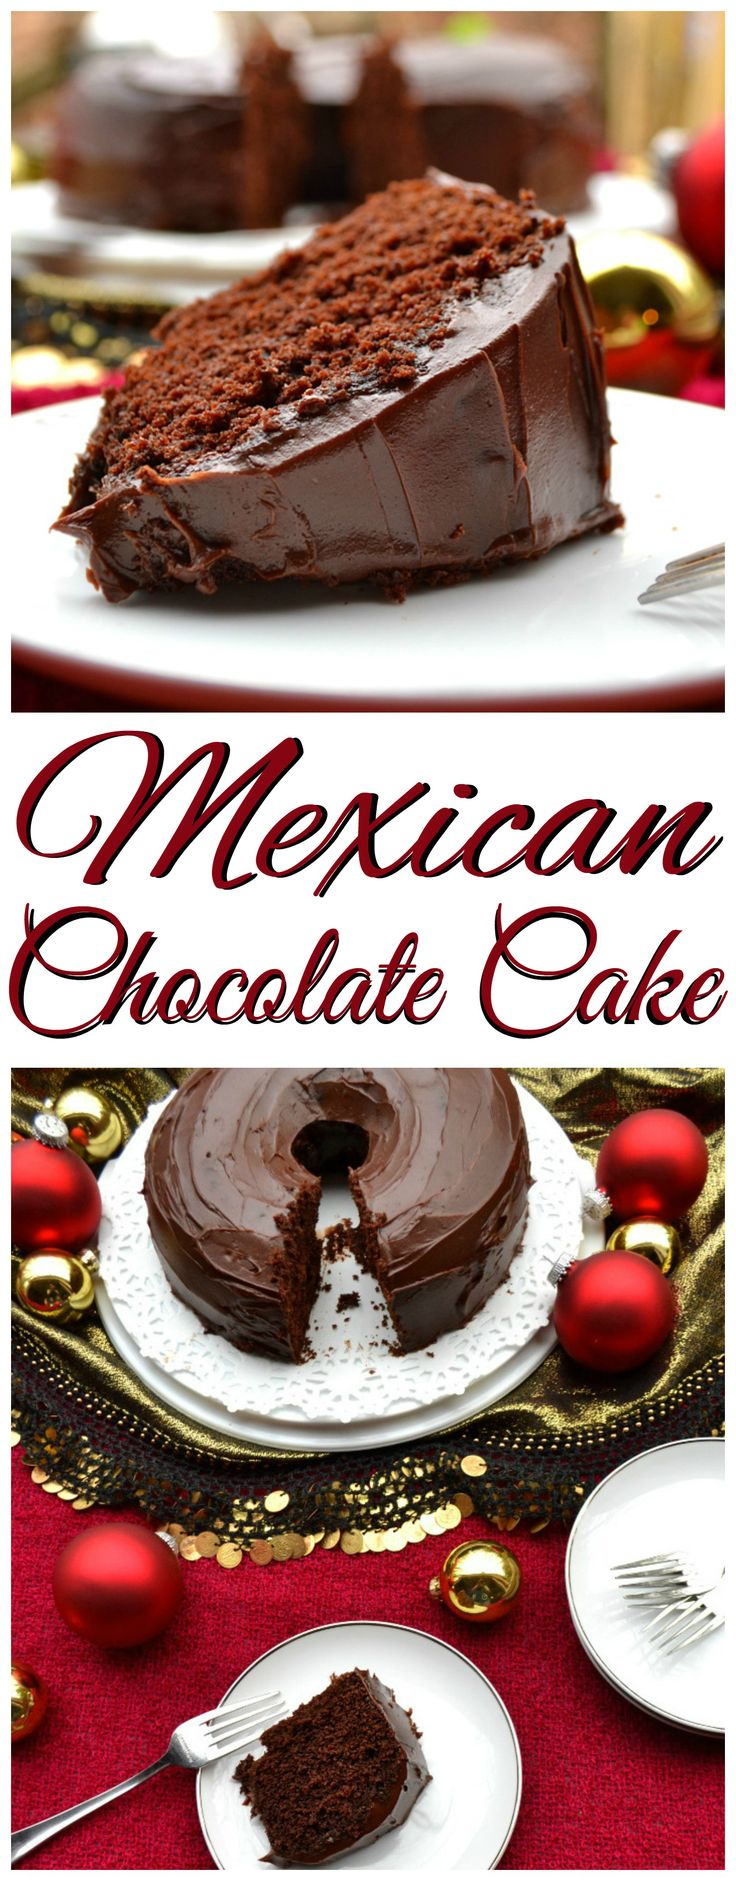 Mexican Chocolate Cake & Ganache Made with Abuelita |  Chocolate, Coffee, Cinnamon & Vanilla | Rich, Moist, Flavorful & Delicious | Christmas Holiday Baking | www.craftycookingmama.com | #nestleholiday ad